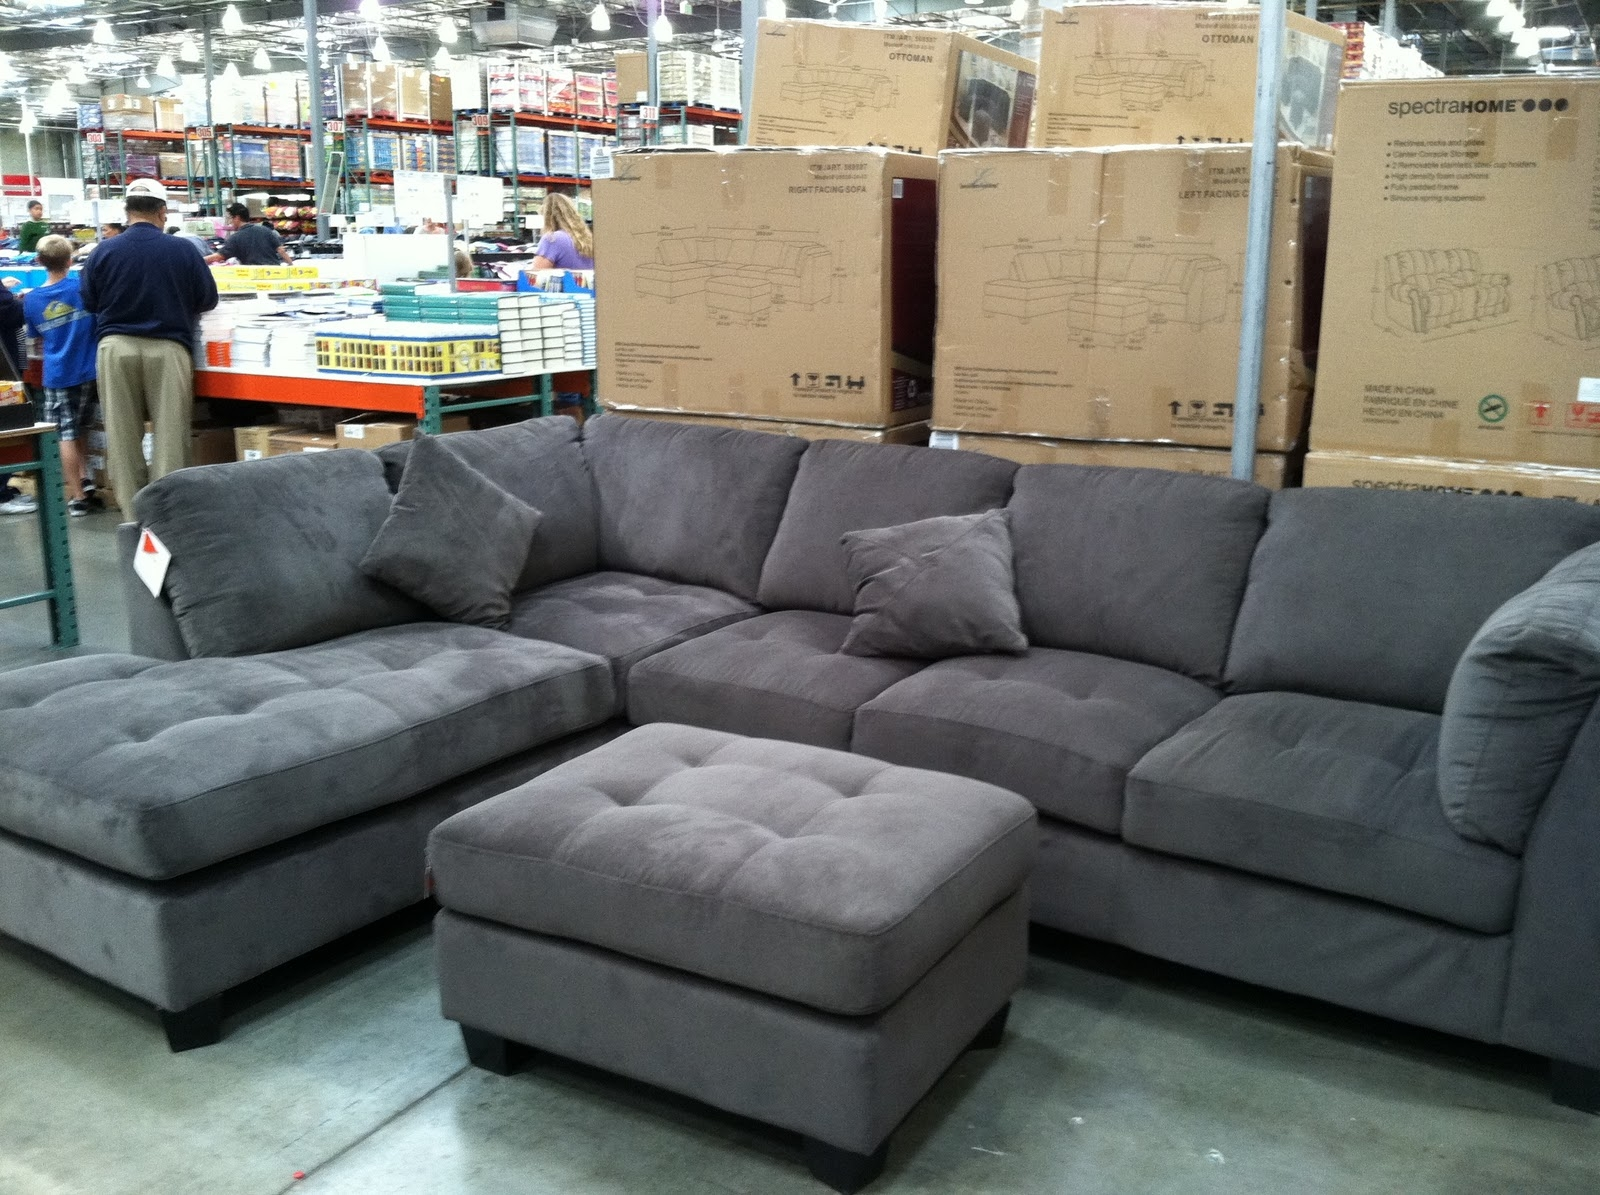 Amusing Multi Piece Sectional Sofa 95 On 6 Piece Modular Sectional Within 6 Piece Modular Sectional Sofa (#7 of 12)